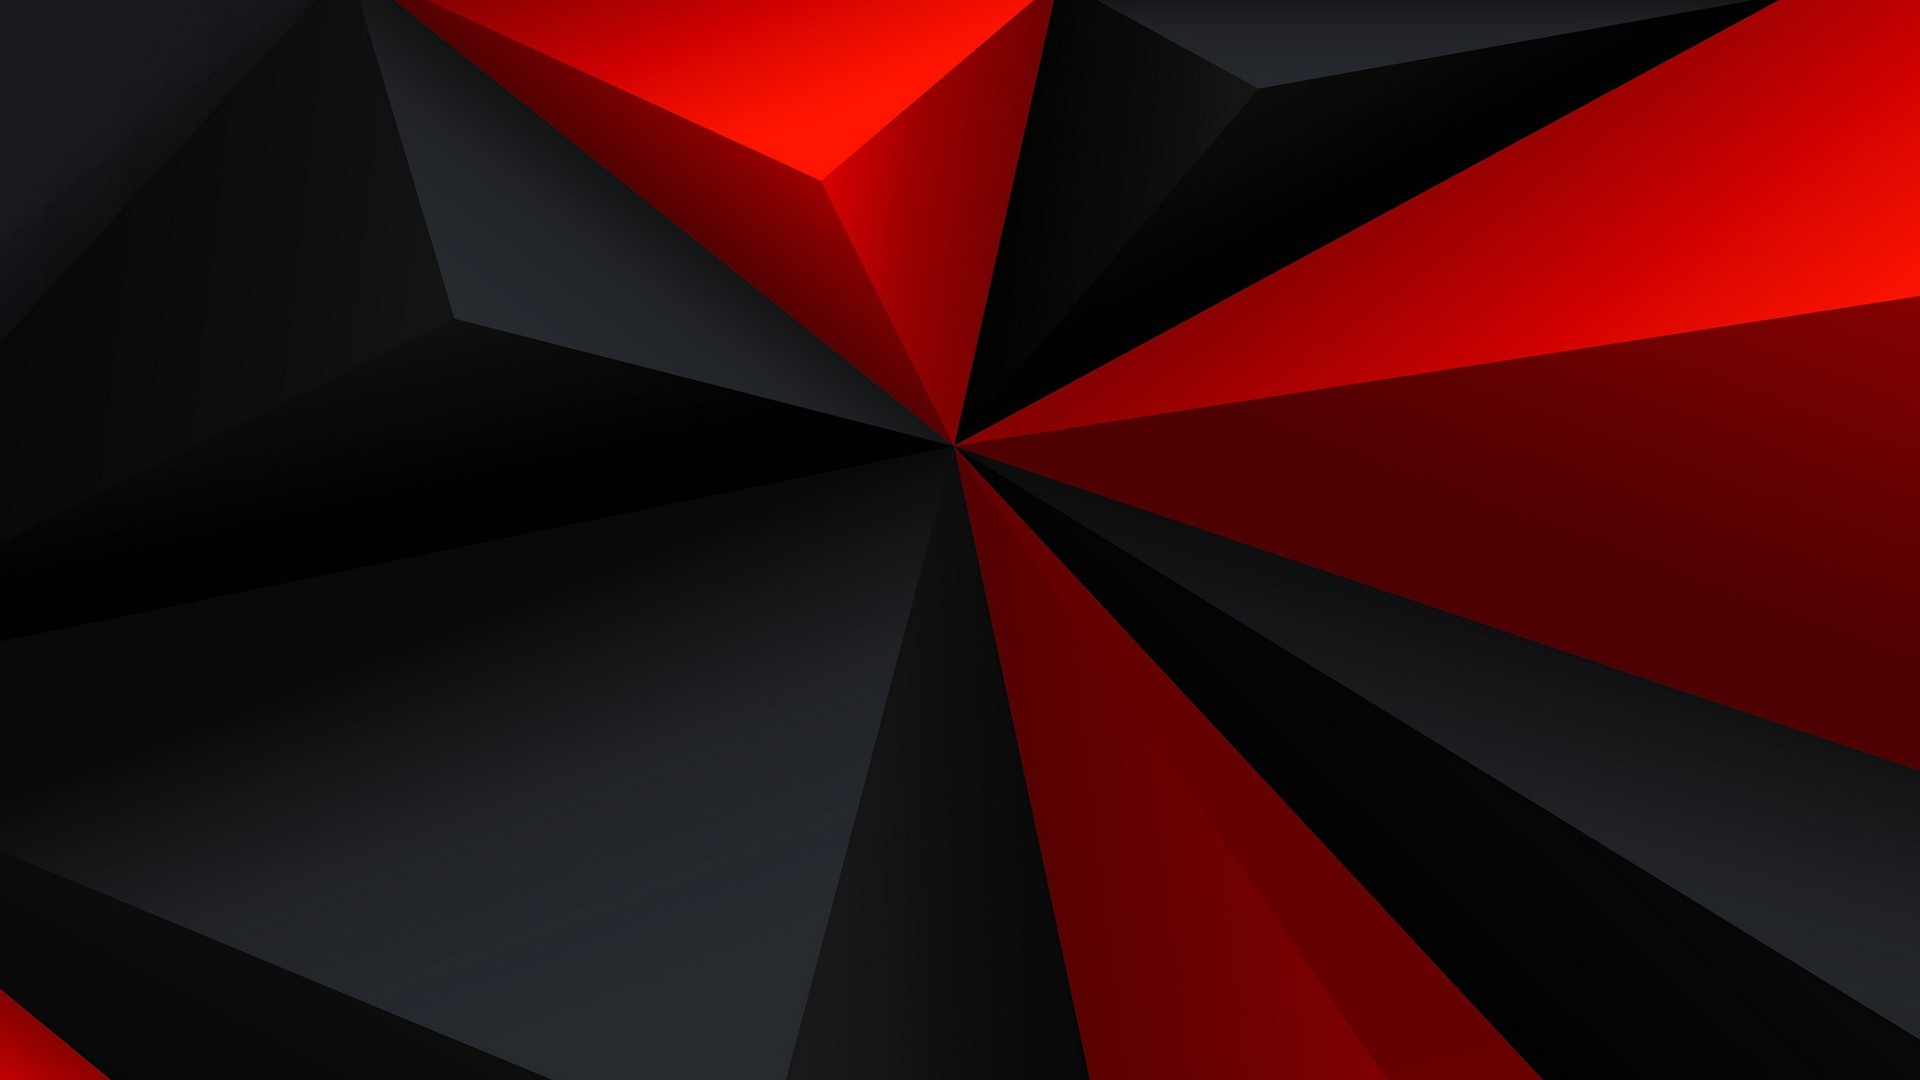 Black And Red Abstract Wallpaper (56+ Images